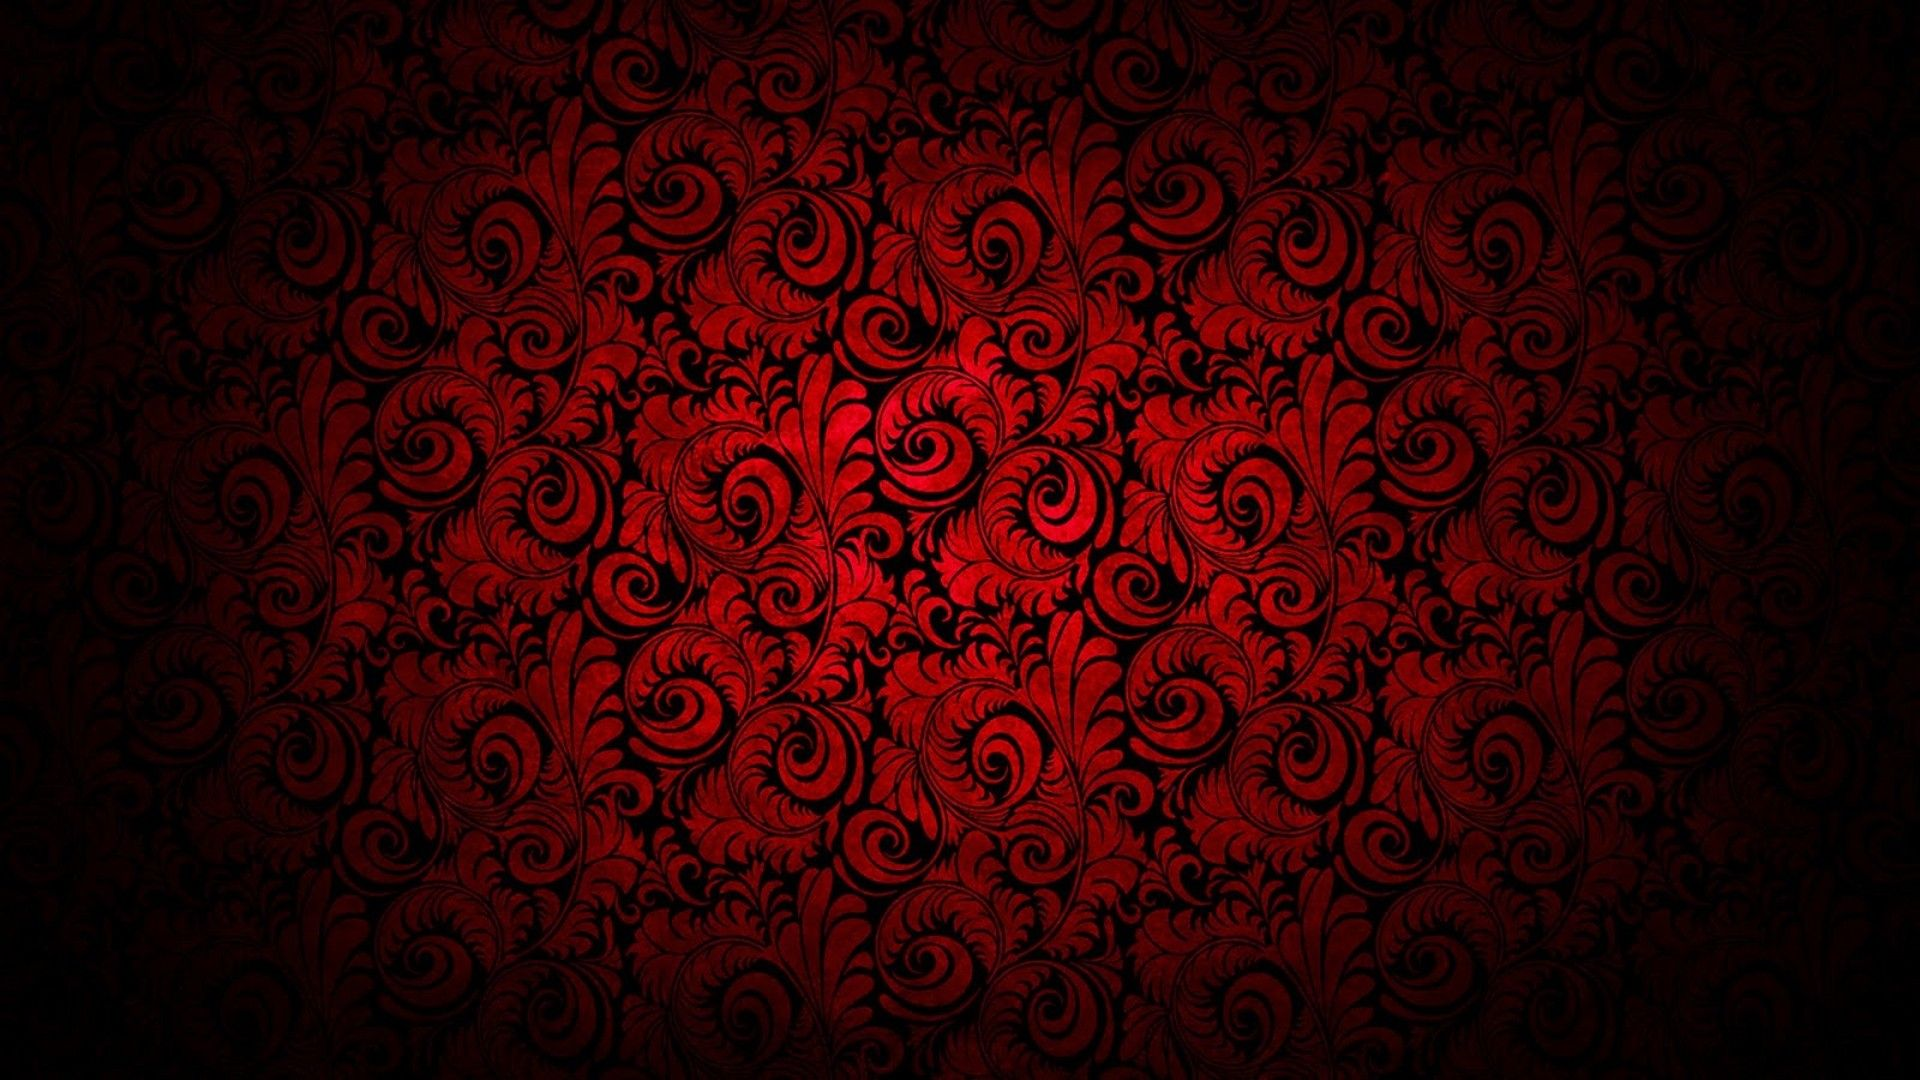 Flower Background Hd Red And Black Wallpapers ...